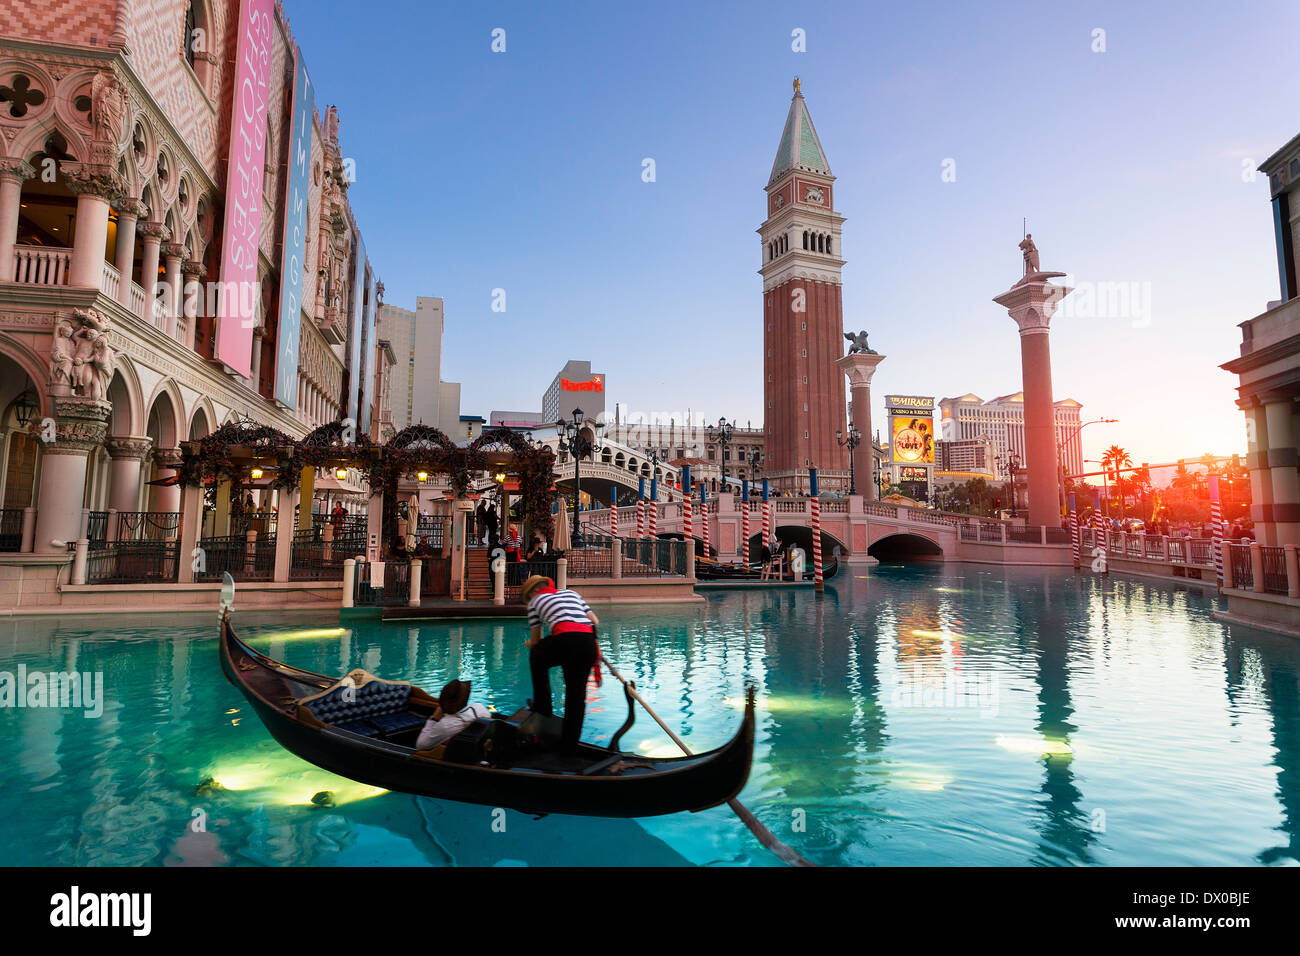 Las Vegas, The Venetian Hotel - Stock Image